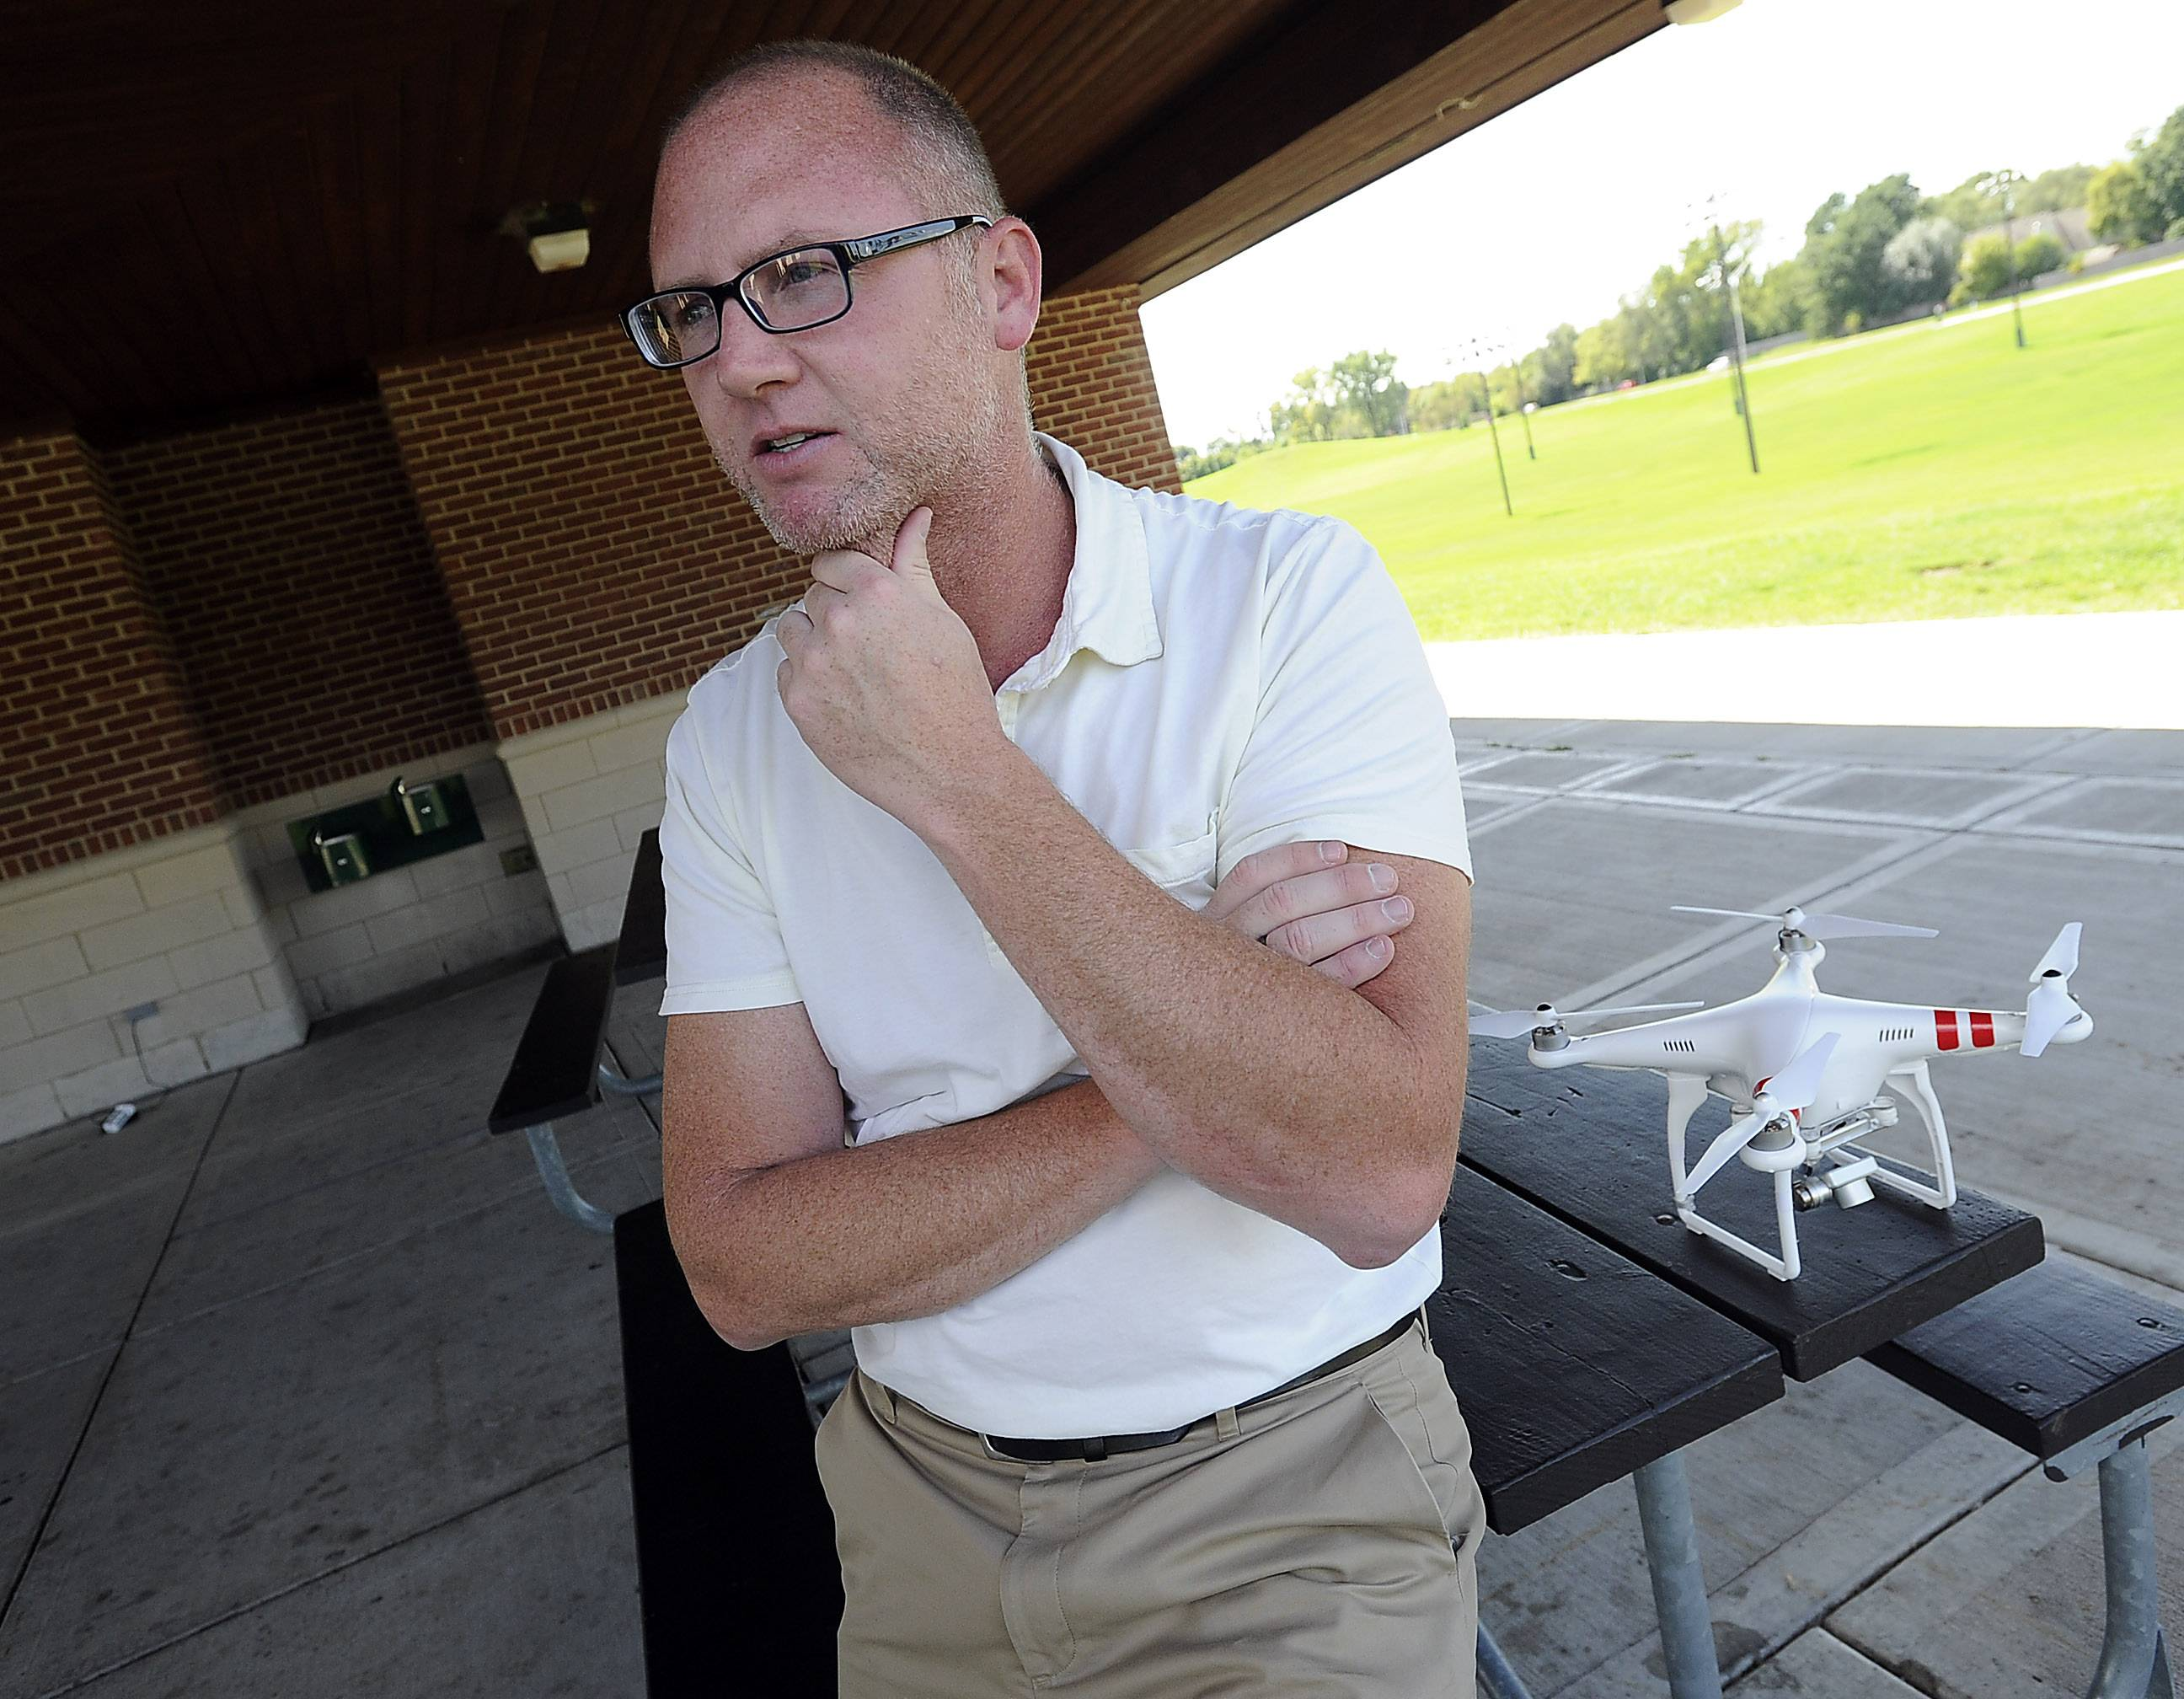 Arlington Heights resident Peter Cahill, CEO and founder of LifeLine Response, discusses the company's smartphone app that can summon aerial drones to the scene of an attack.